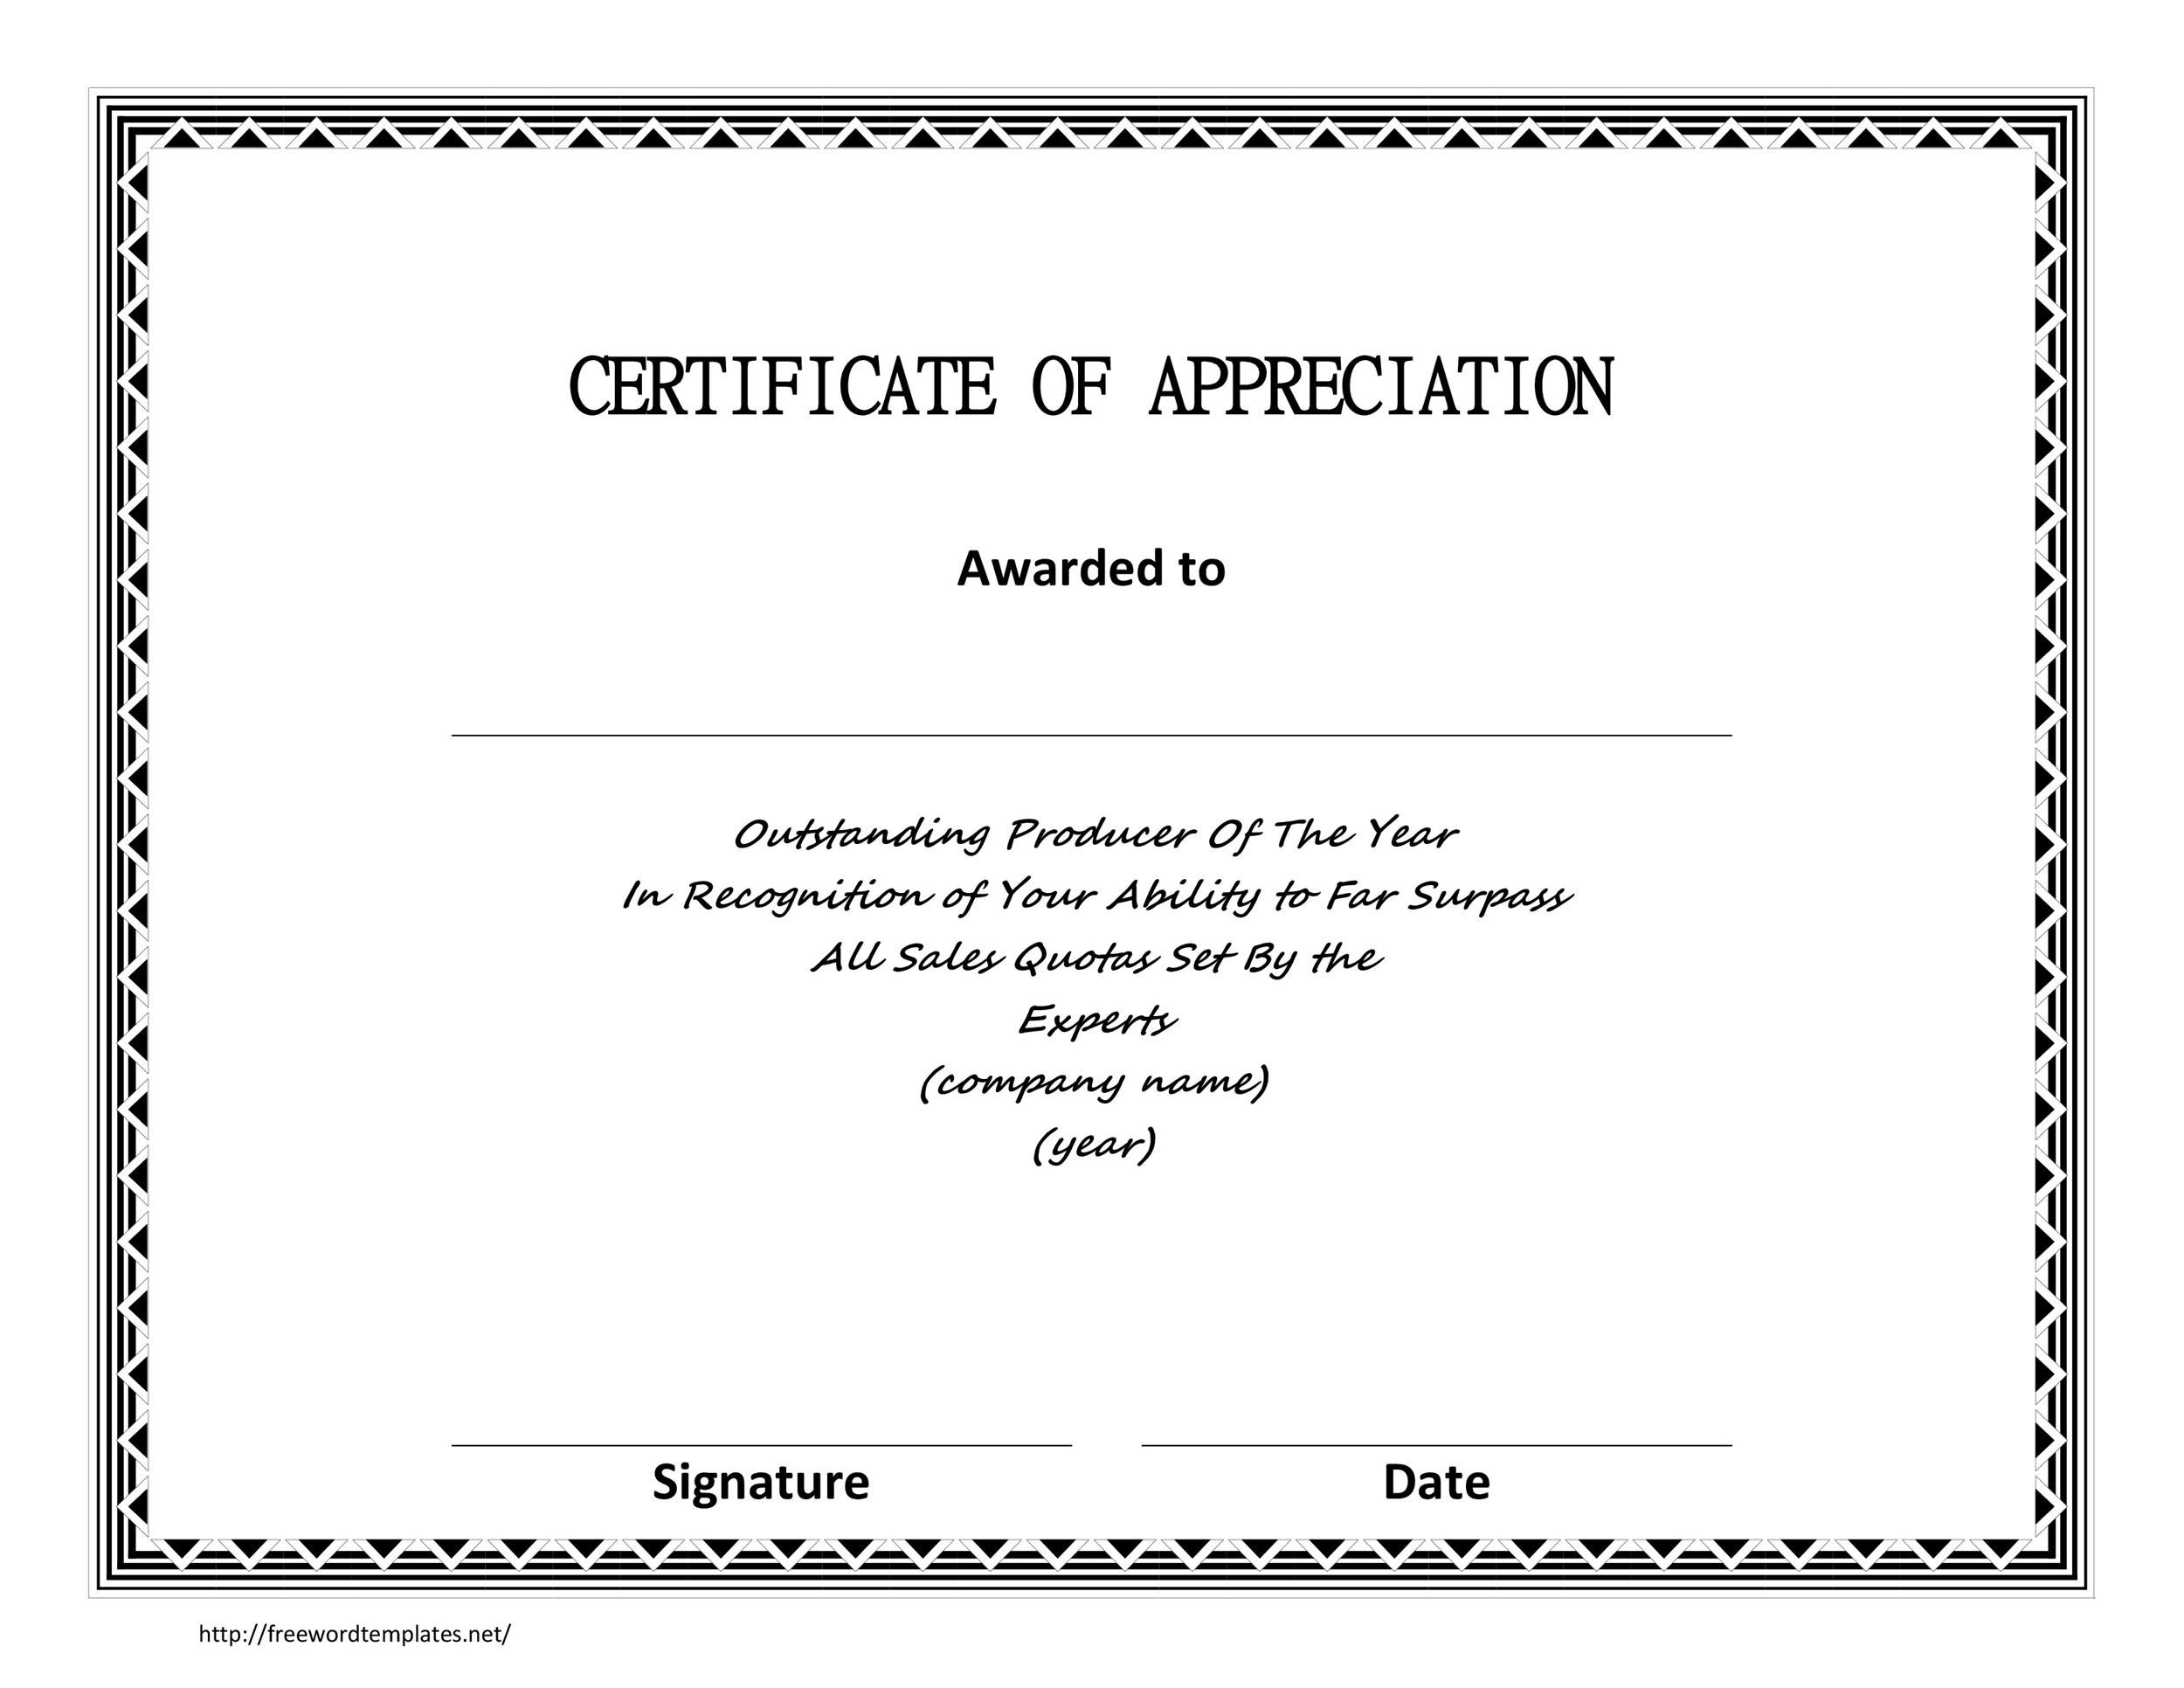 30 free certificate of appreciation templates and letters printable certificate of appreciation 06 yelopaper Choice Image